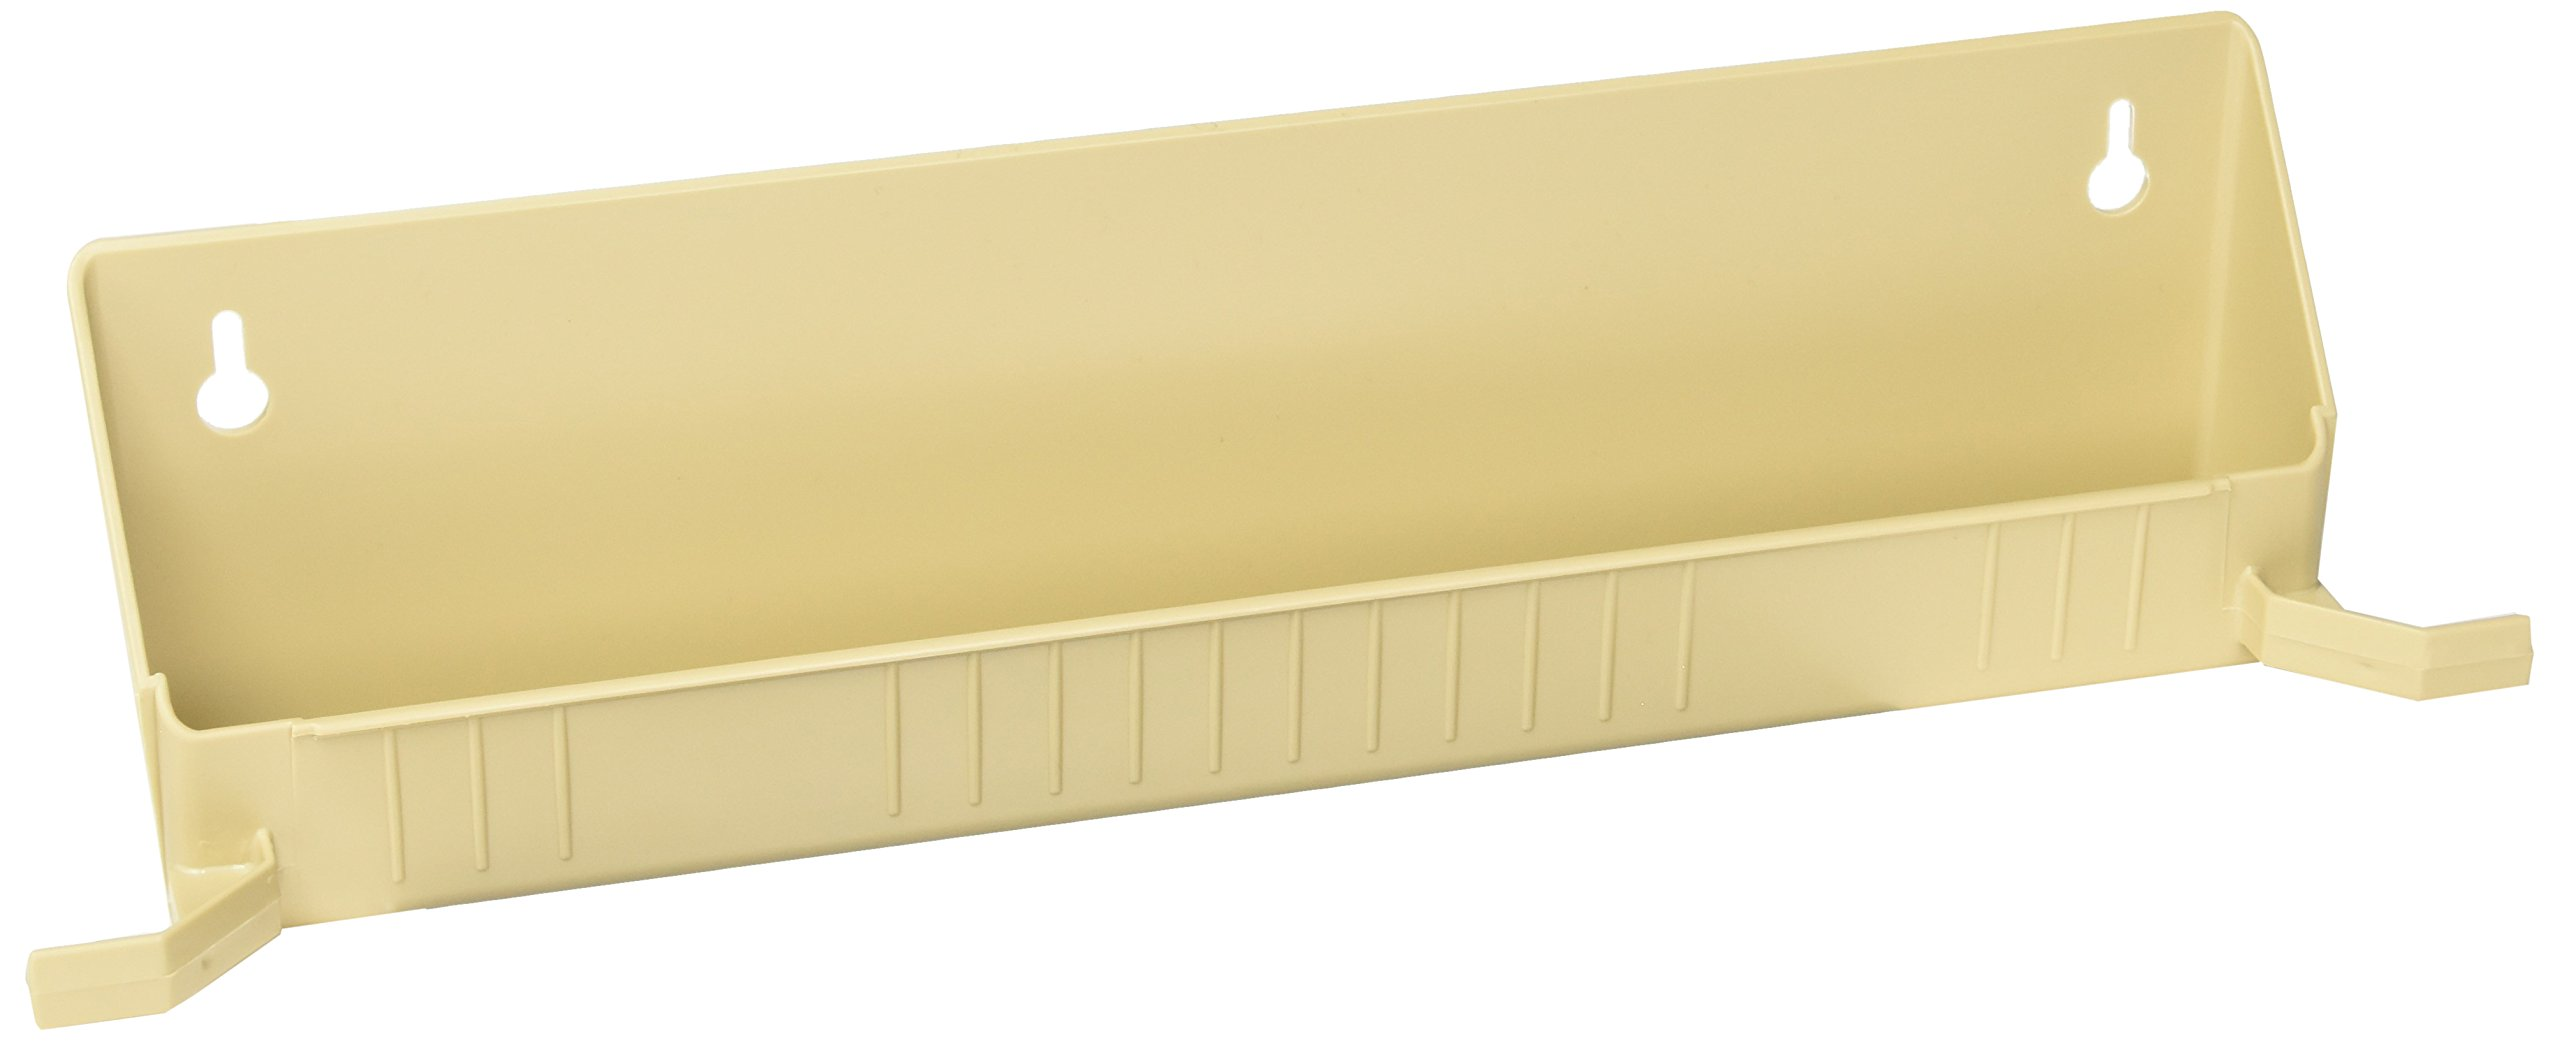 Rev-A-Shelf 14 in Tip-Out Trays w/Tab Stops, White